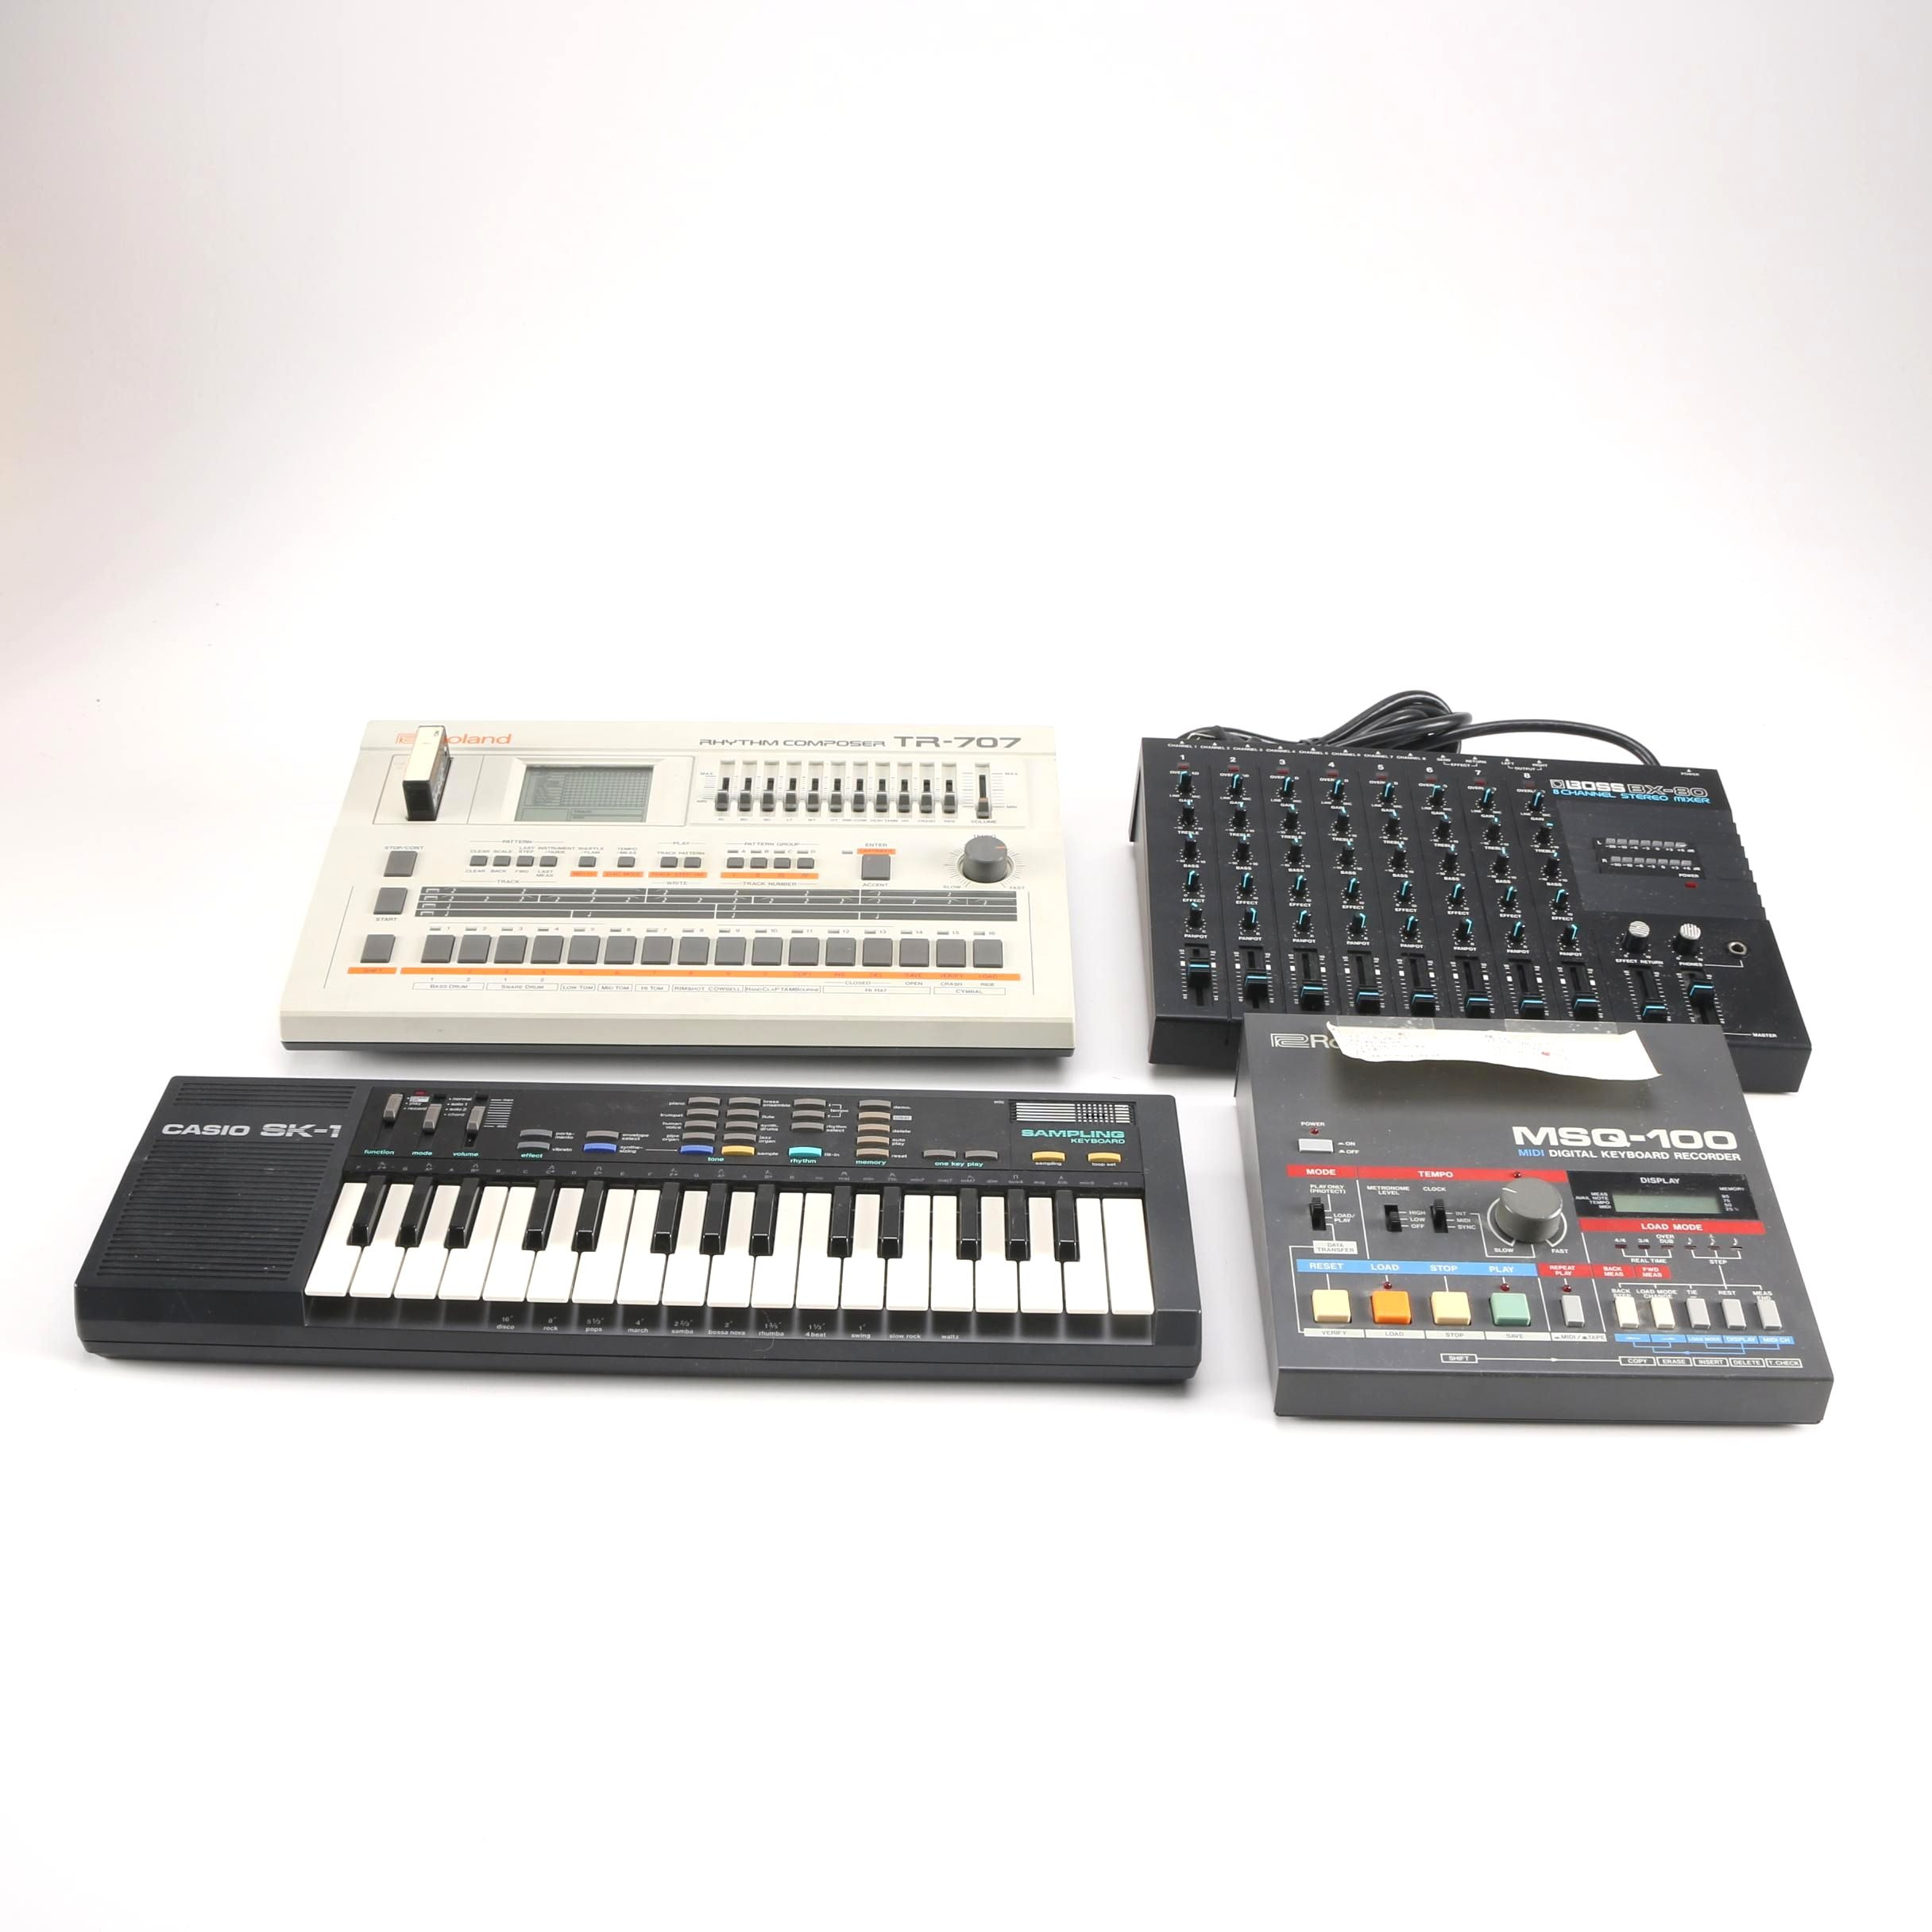 Roland Drum Machine and MIDI Recorder, Boss Mixer, Casio Keyboard